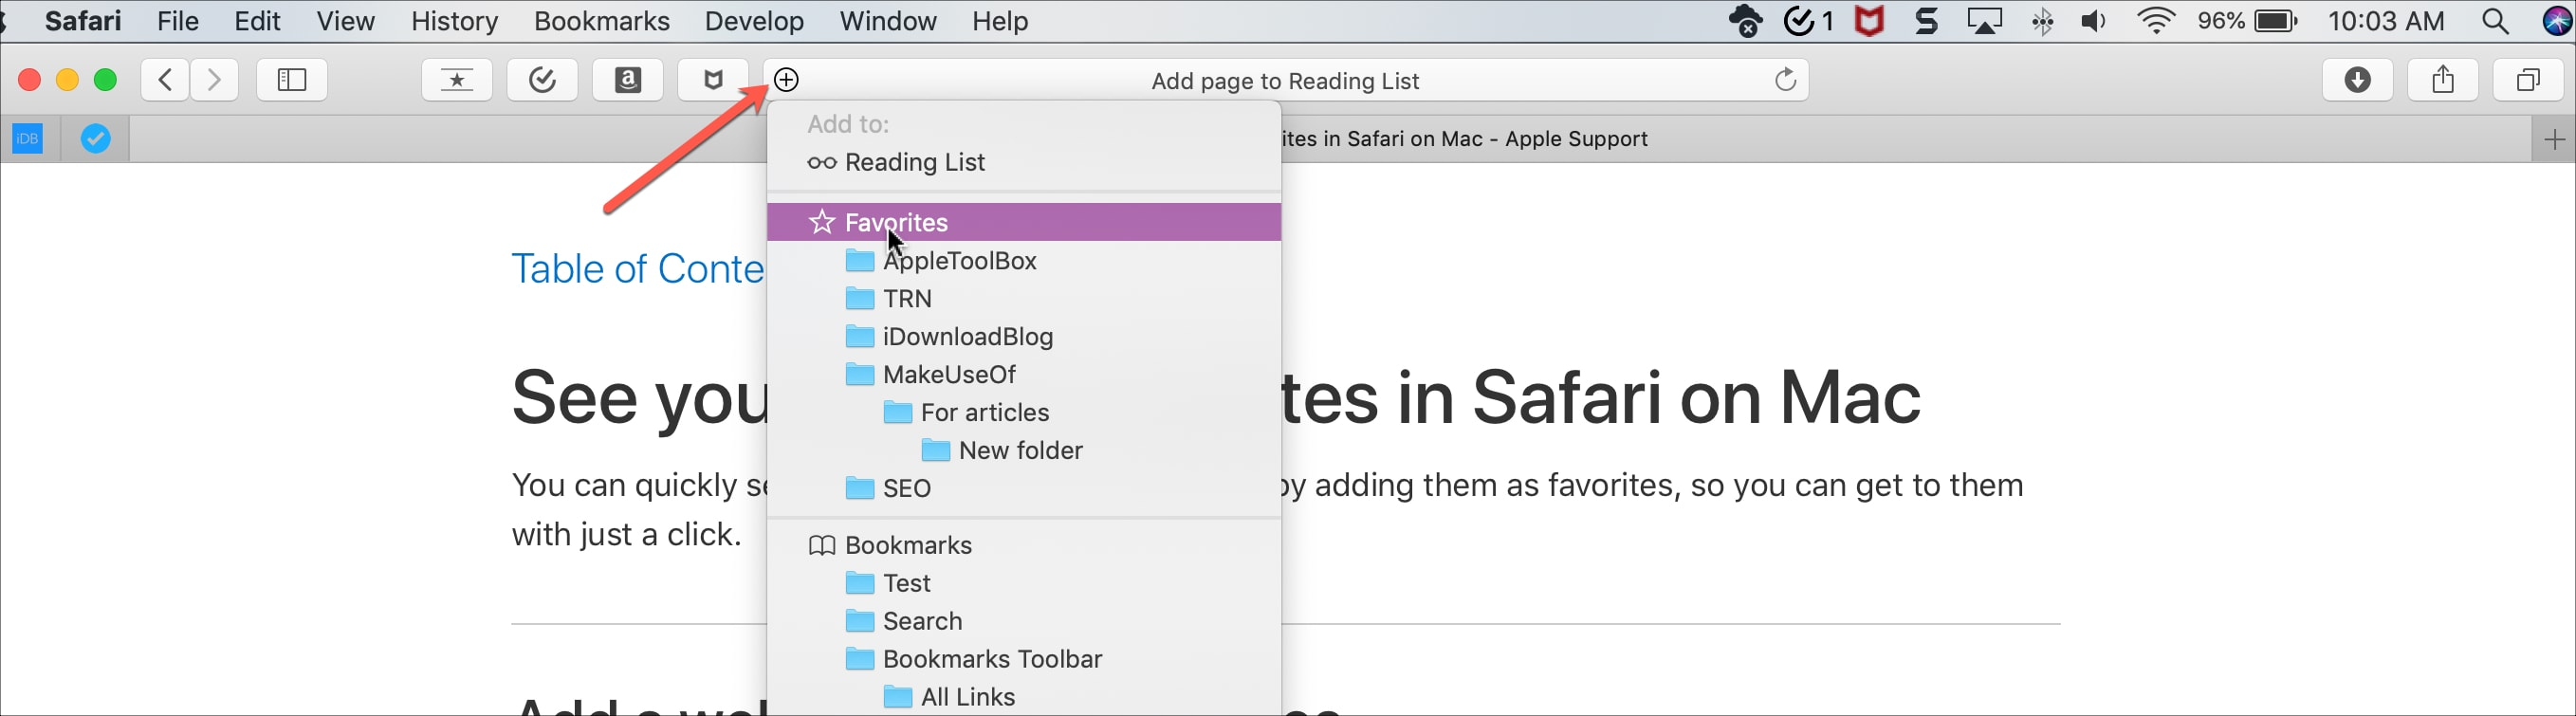 Add Favorites Safari Mac